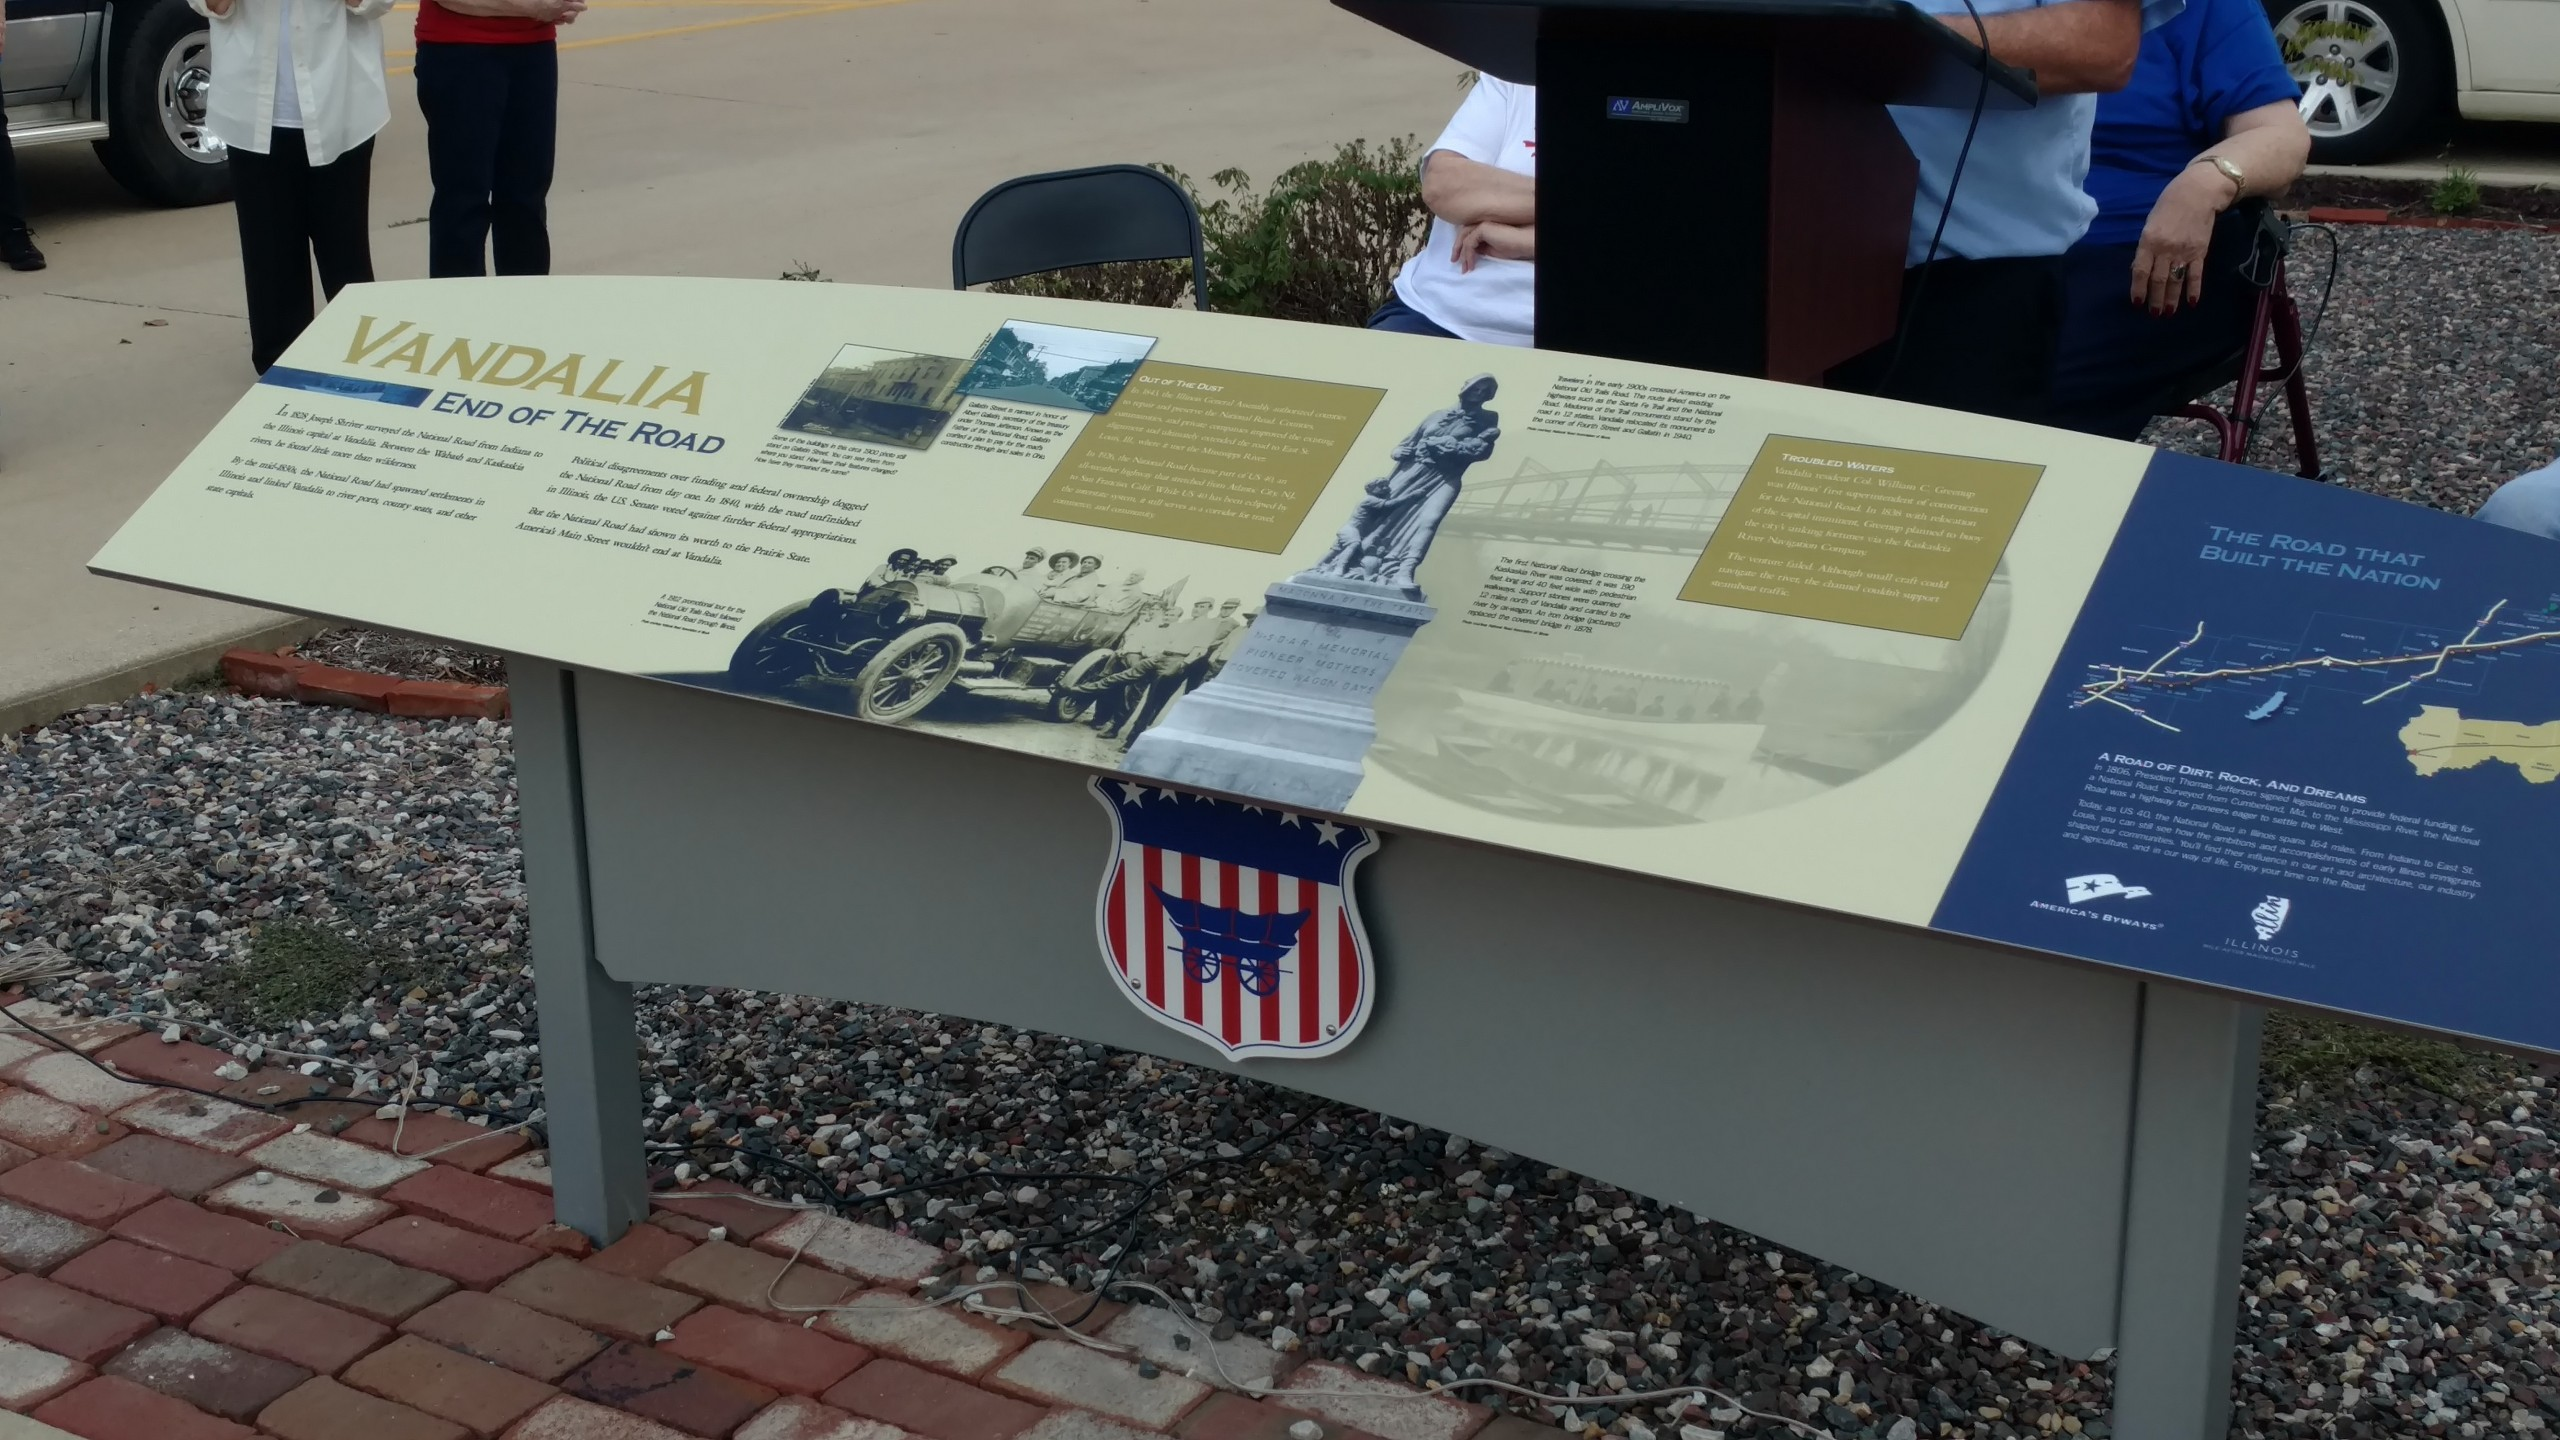 National Road Kiosk dedicated on Saturday in Vandalia